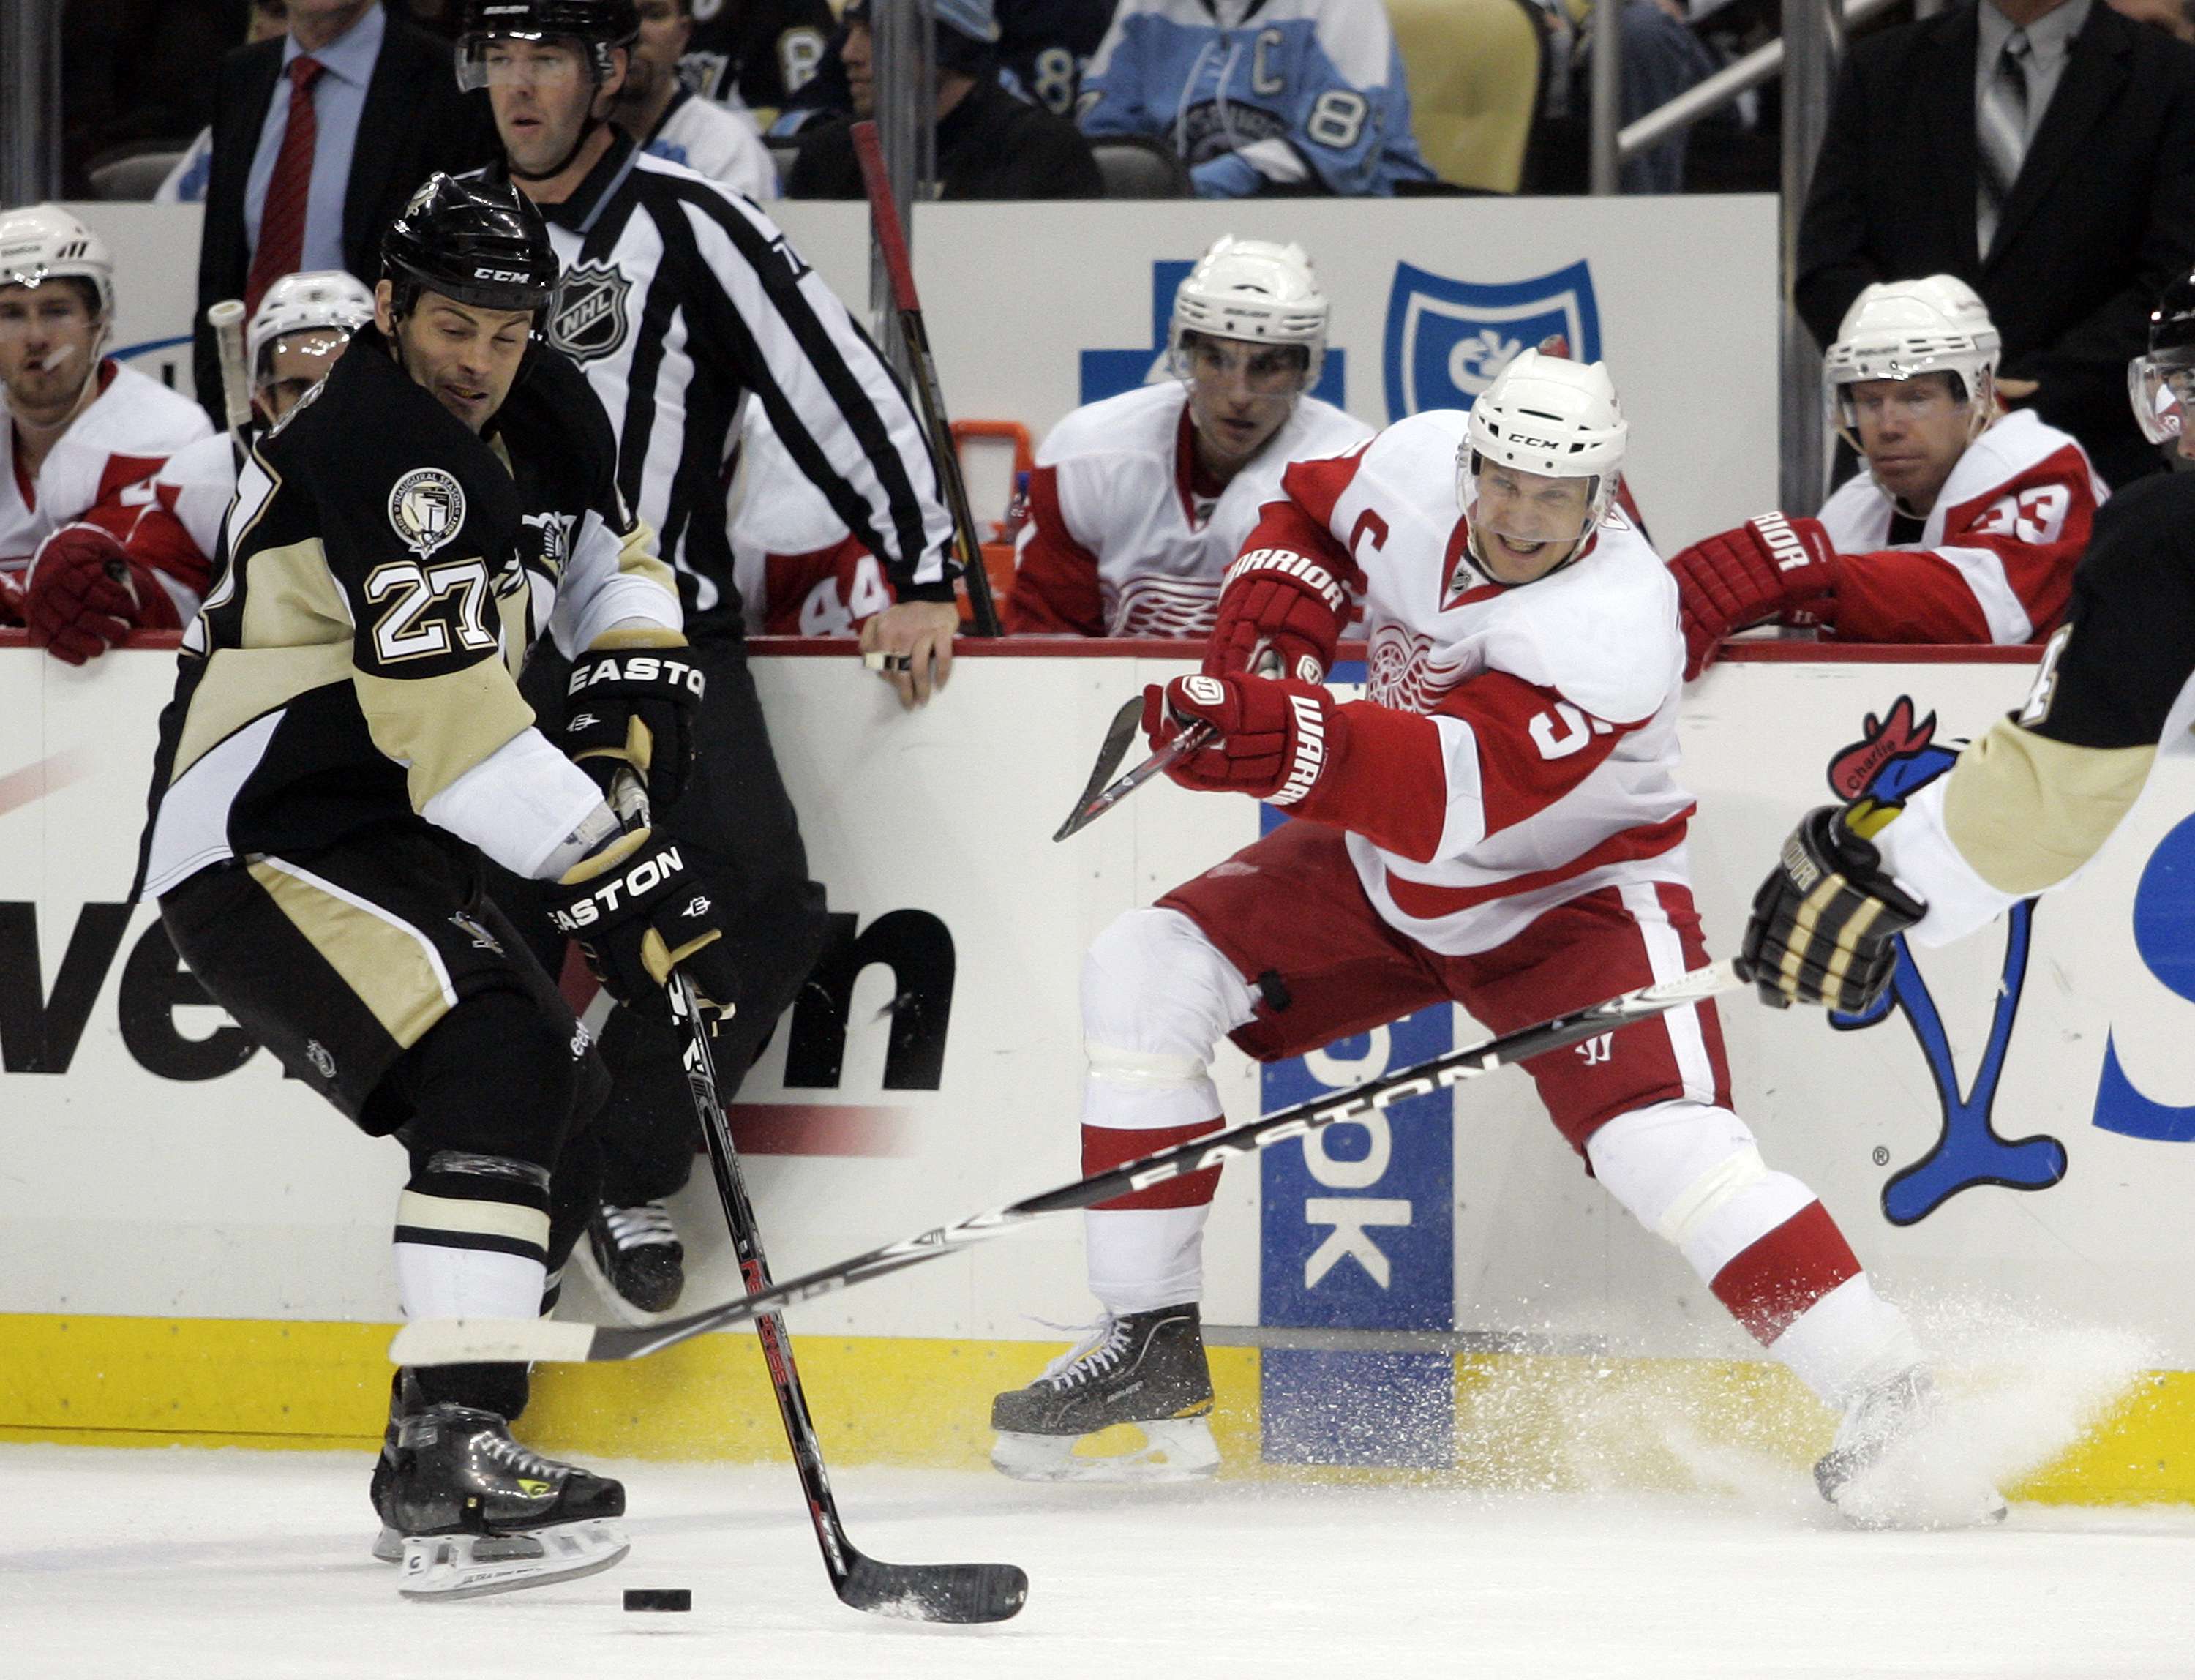 PITTSBURGH, PA - JANUARY 18:  Nicklas Lidstrom #5 of the Detroit Red Wings makes a pass against the Pittsburgh Penguins at Consol Energy Center on January 18, 2011 in Pittsburgh, Pennsylvania.  (Photo by Justin K. Aller/Getty Images)